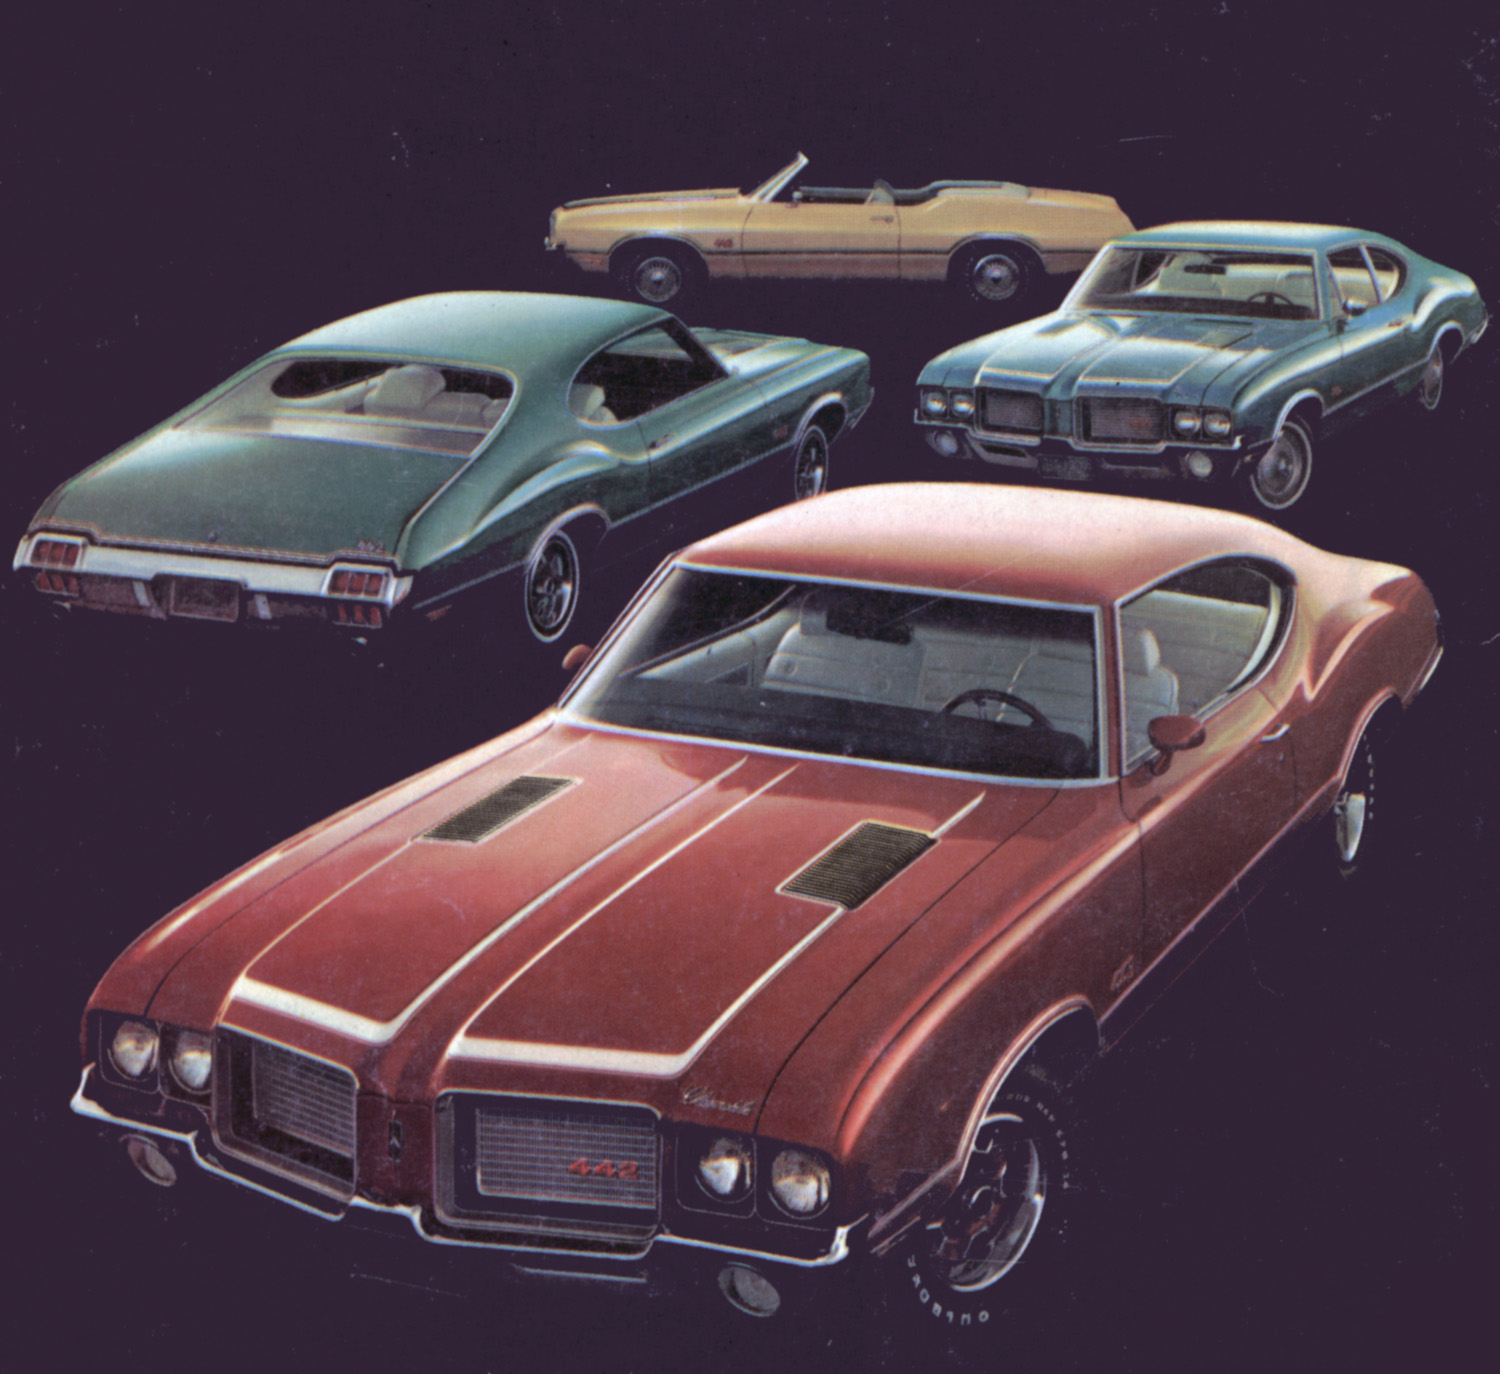 Olds kept the convertible 442 unlike pontiac their gto wide variety meant easy ways to buy one in 1972